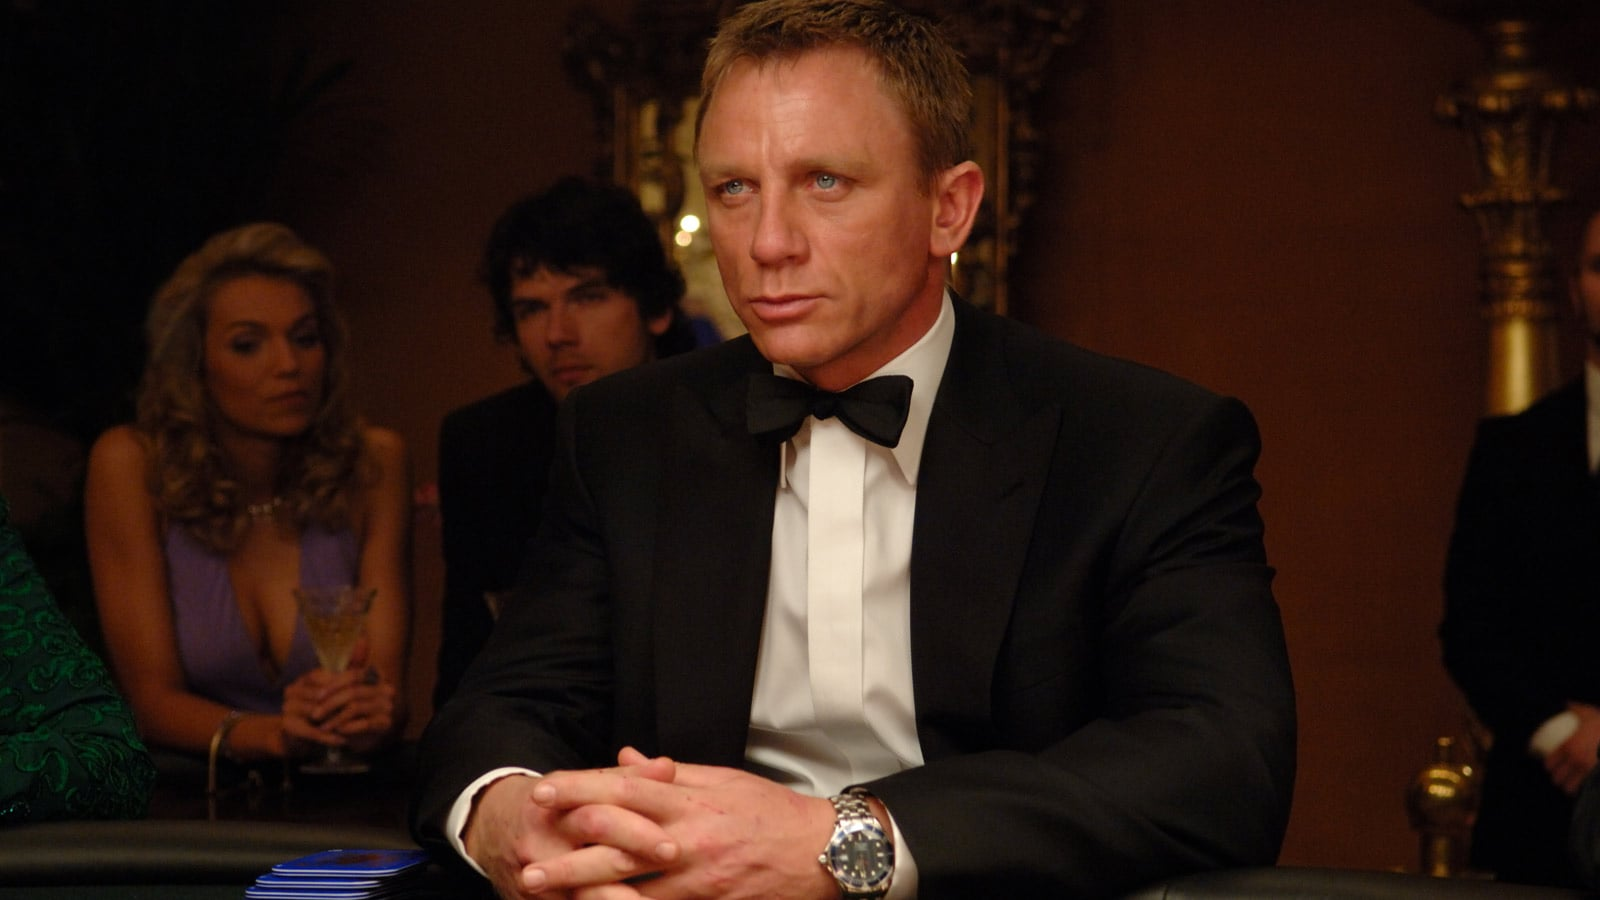 OMEGA and James Bond : a beautiful friendship | OMEGA® 歐米茄與占士邦:友誼永固 | OMEGA® - 單一 - 9863